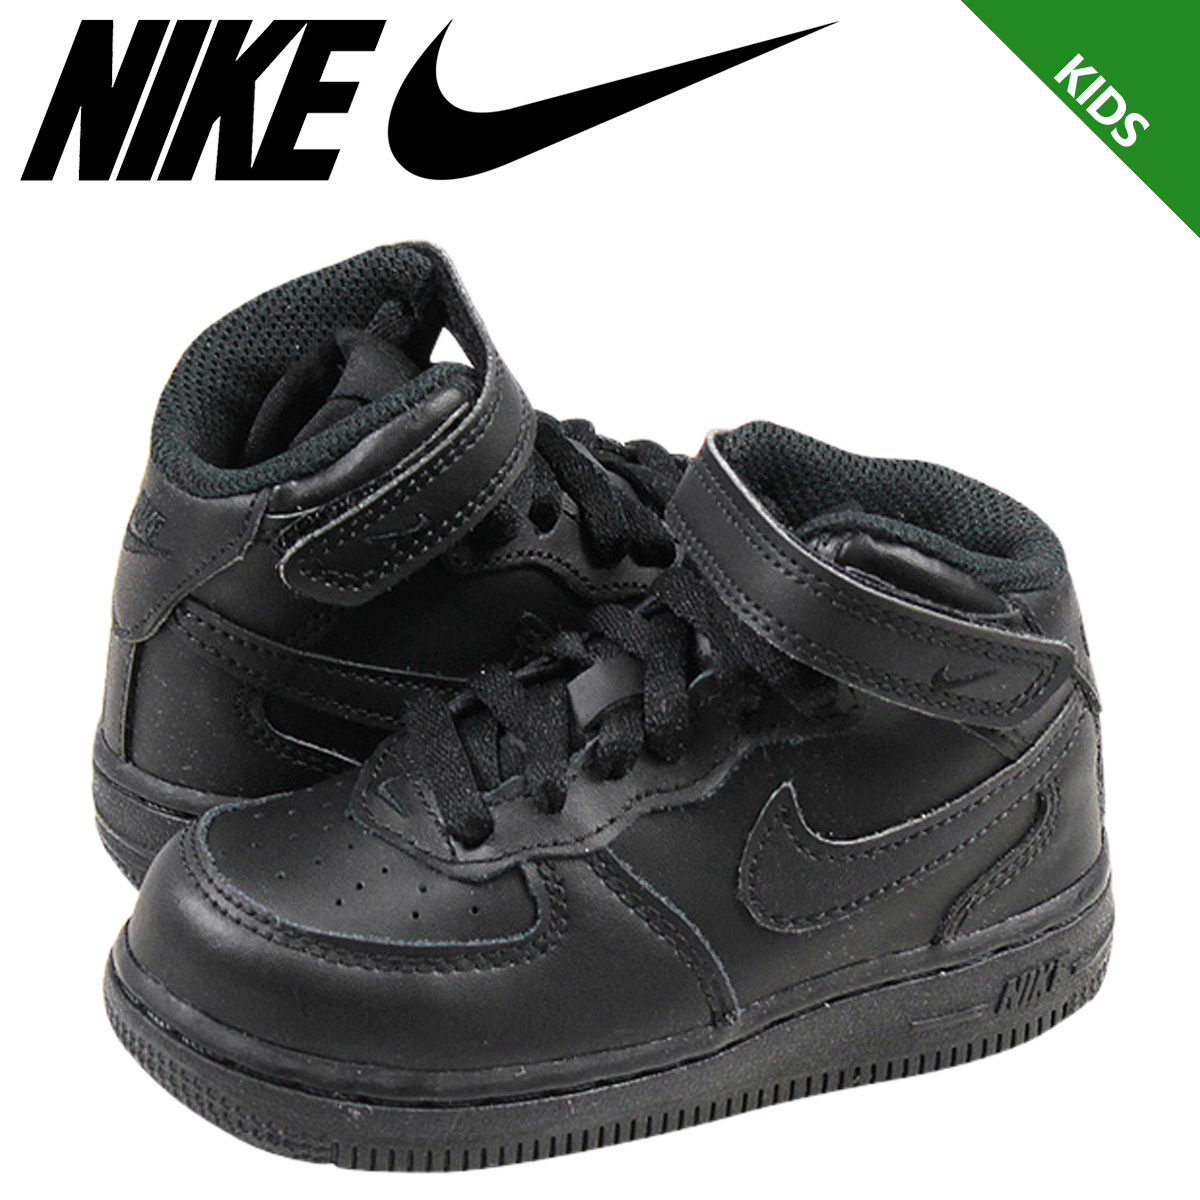 27783fbf Nike NIKE baby kids ' AIR FORCE 1 MID TD sneakers air force 1 mid toddler  ...